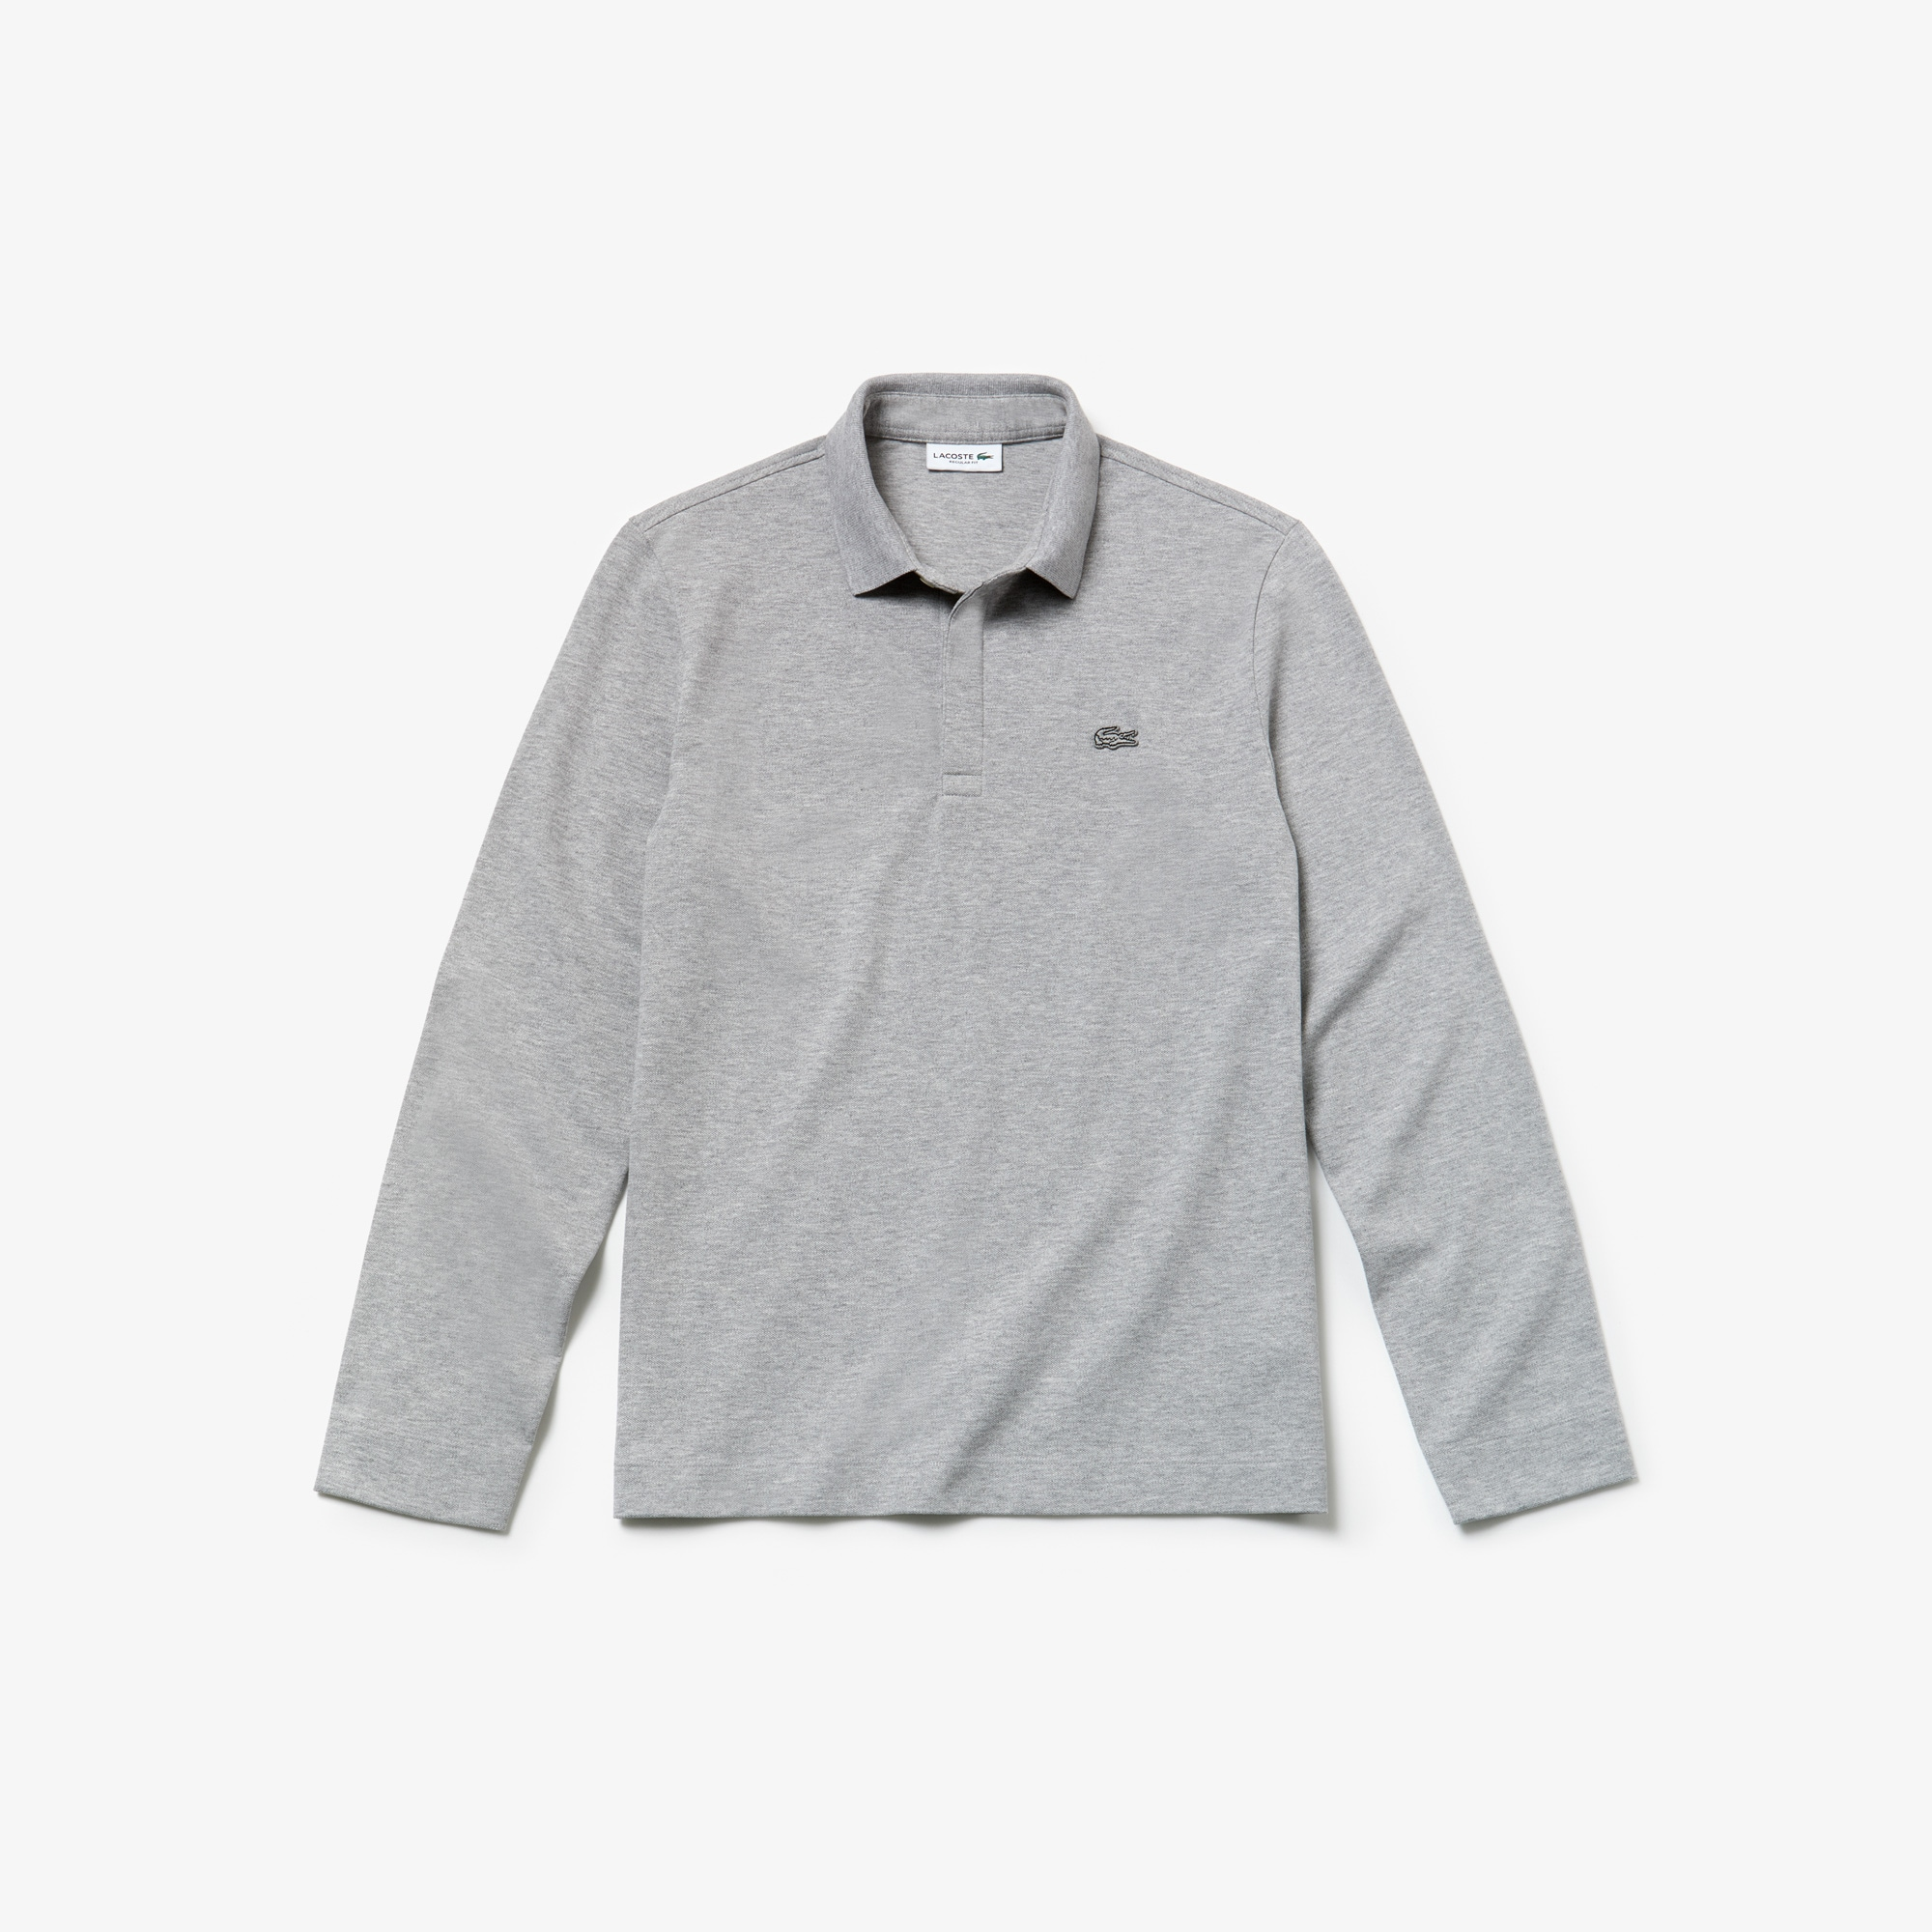 Shirts Men Lacoste For Men's Polo xX0ZqFa